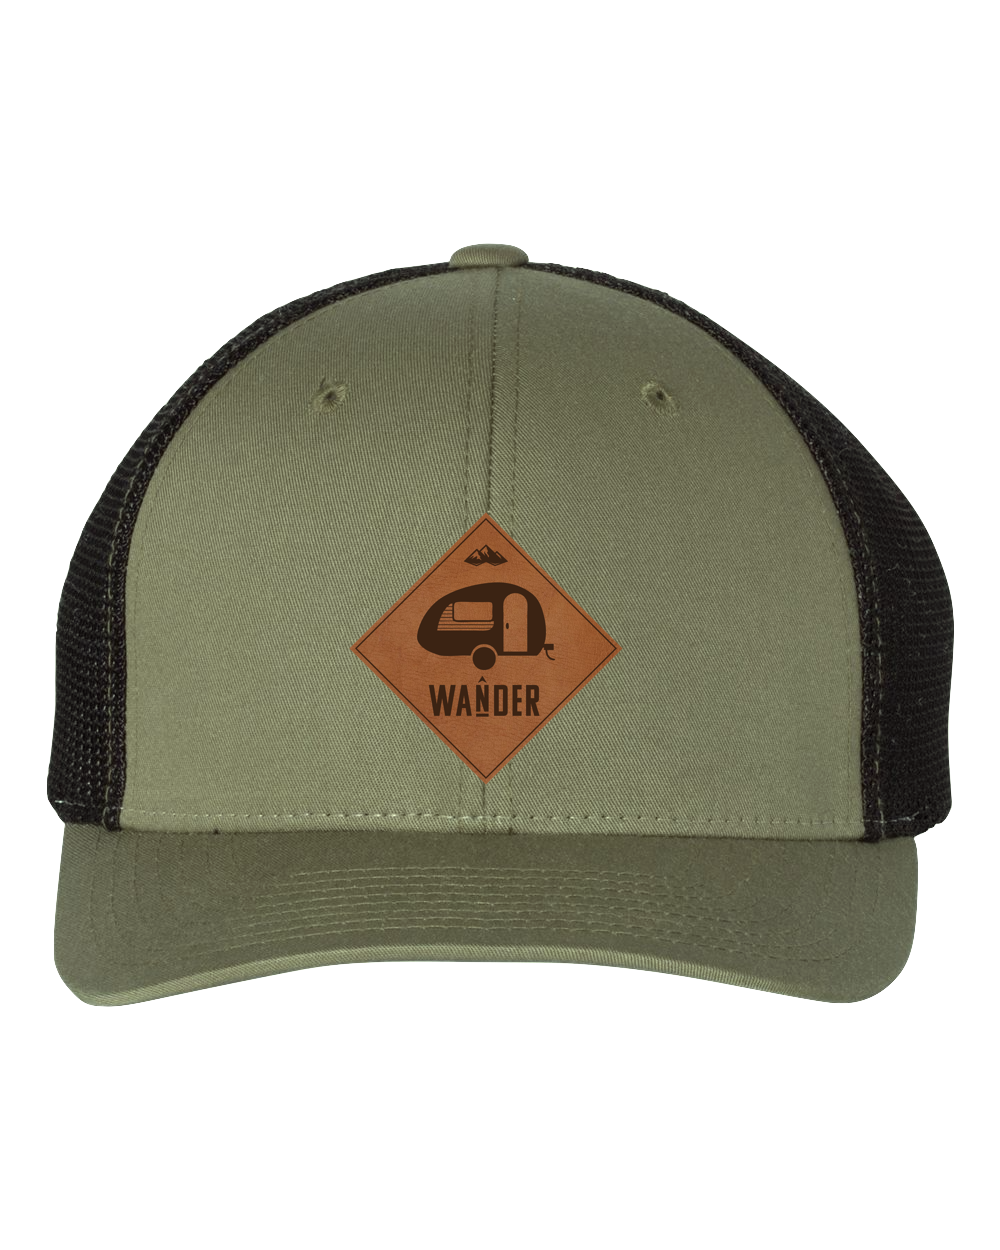 Wander Camper Leather Patch Hat